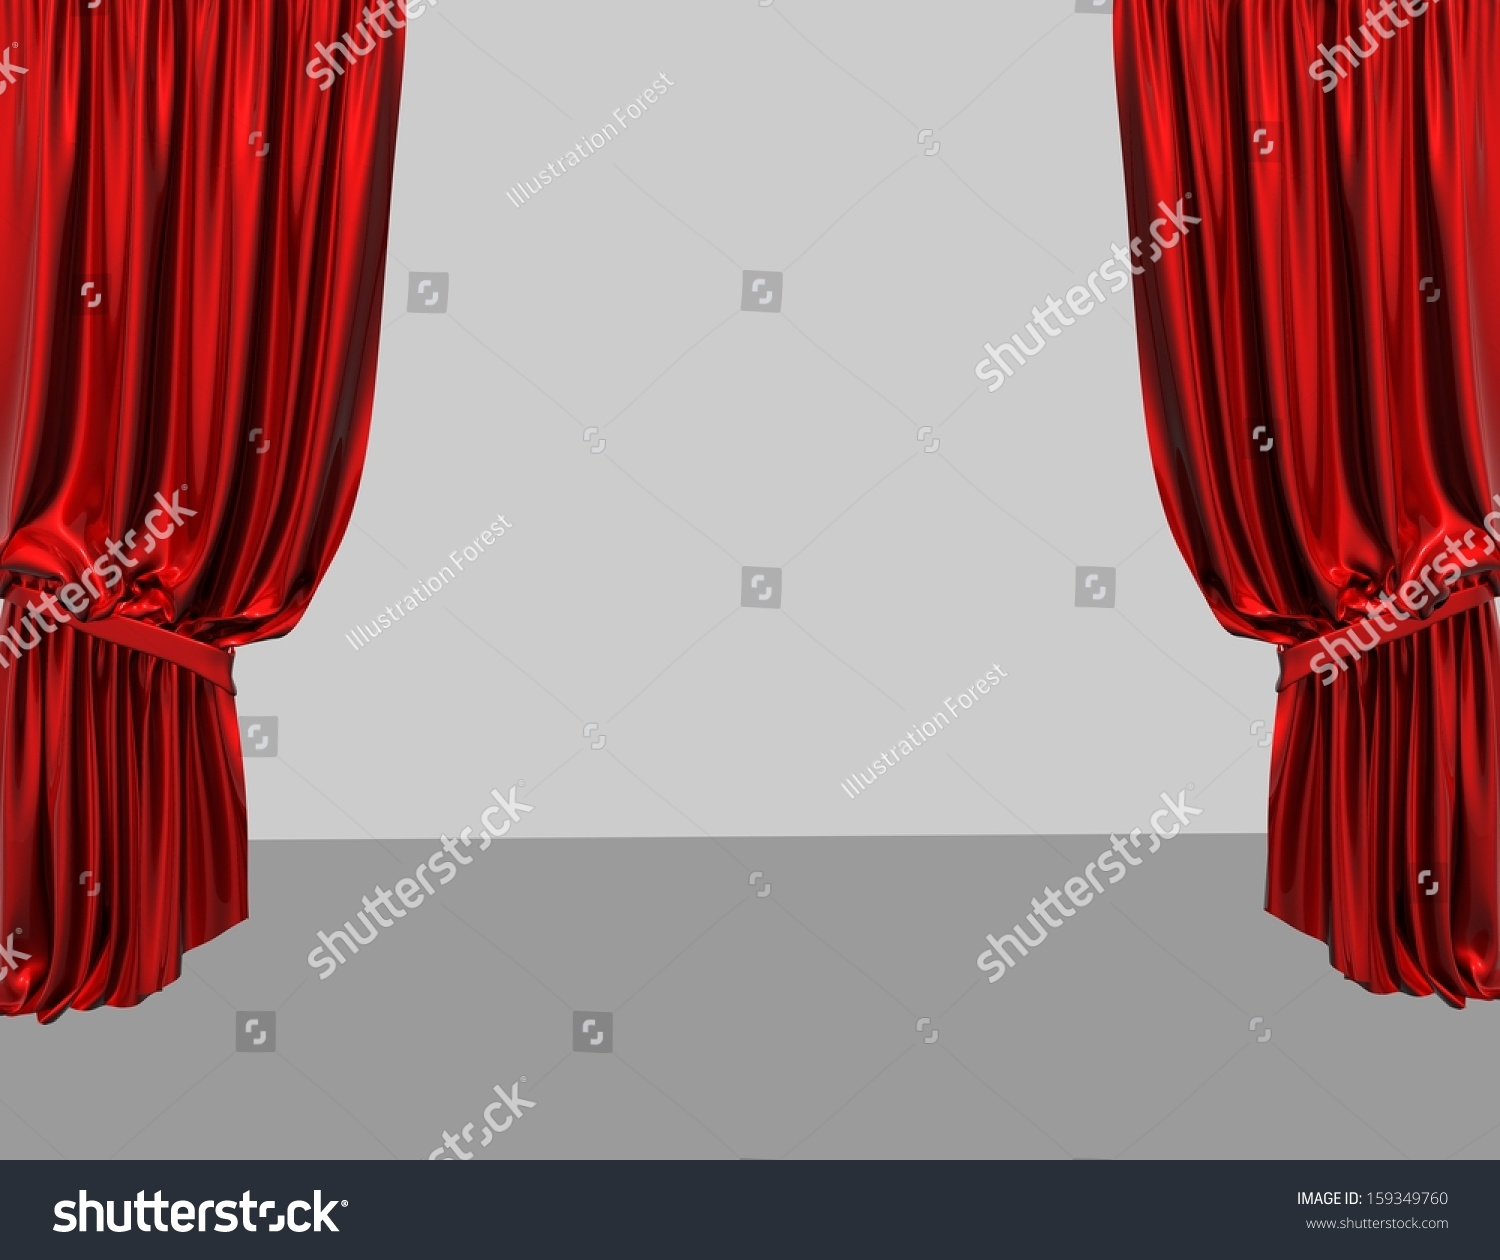 Red stage curtain with lights - Empty Product Presentation Stage With Red Curtains And Light Grey Background